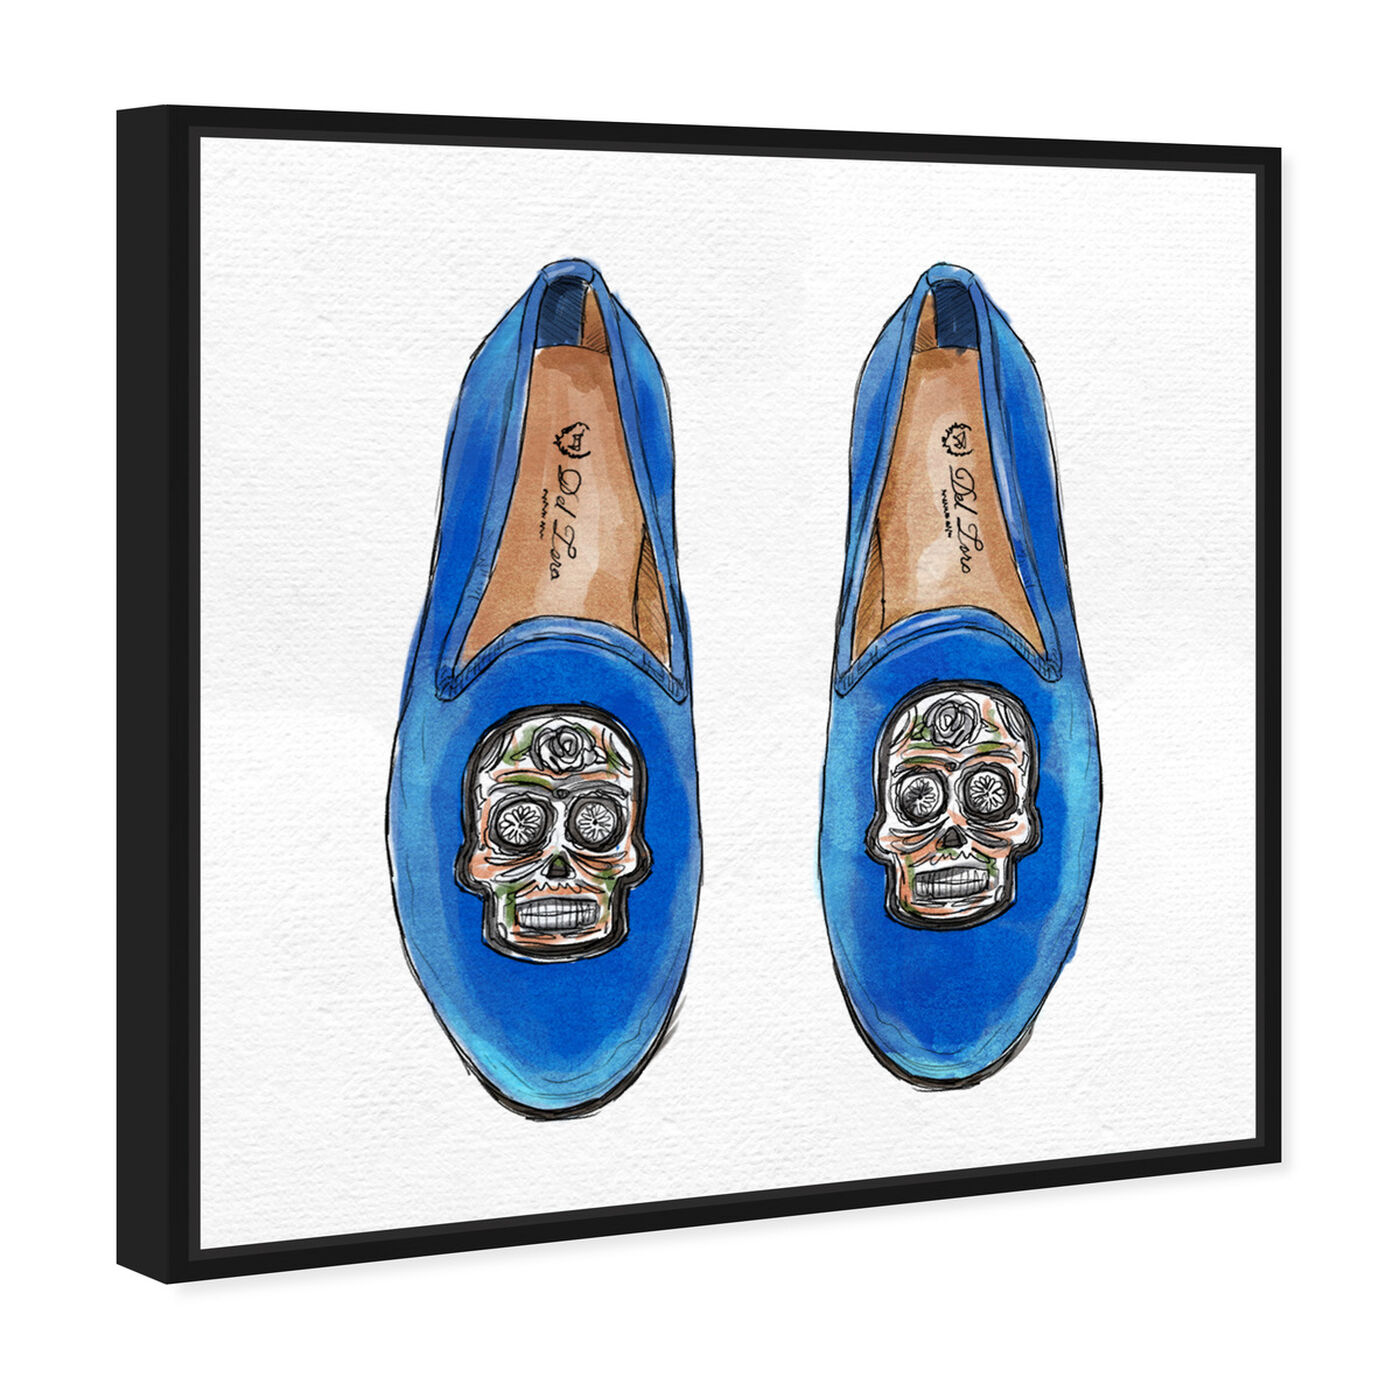 Angled view of Skull Slippers featuring fashion and glam and shoes art.